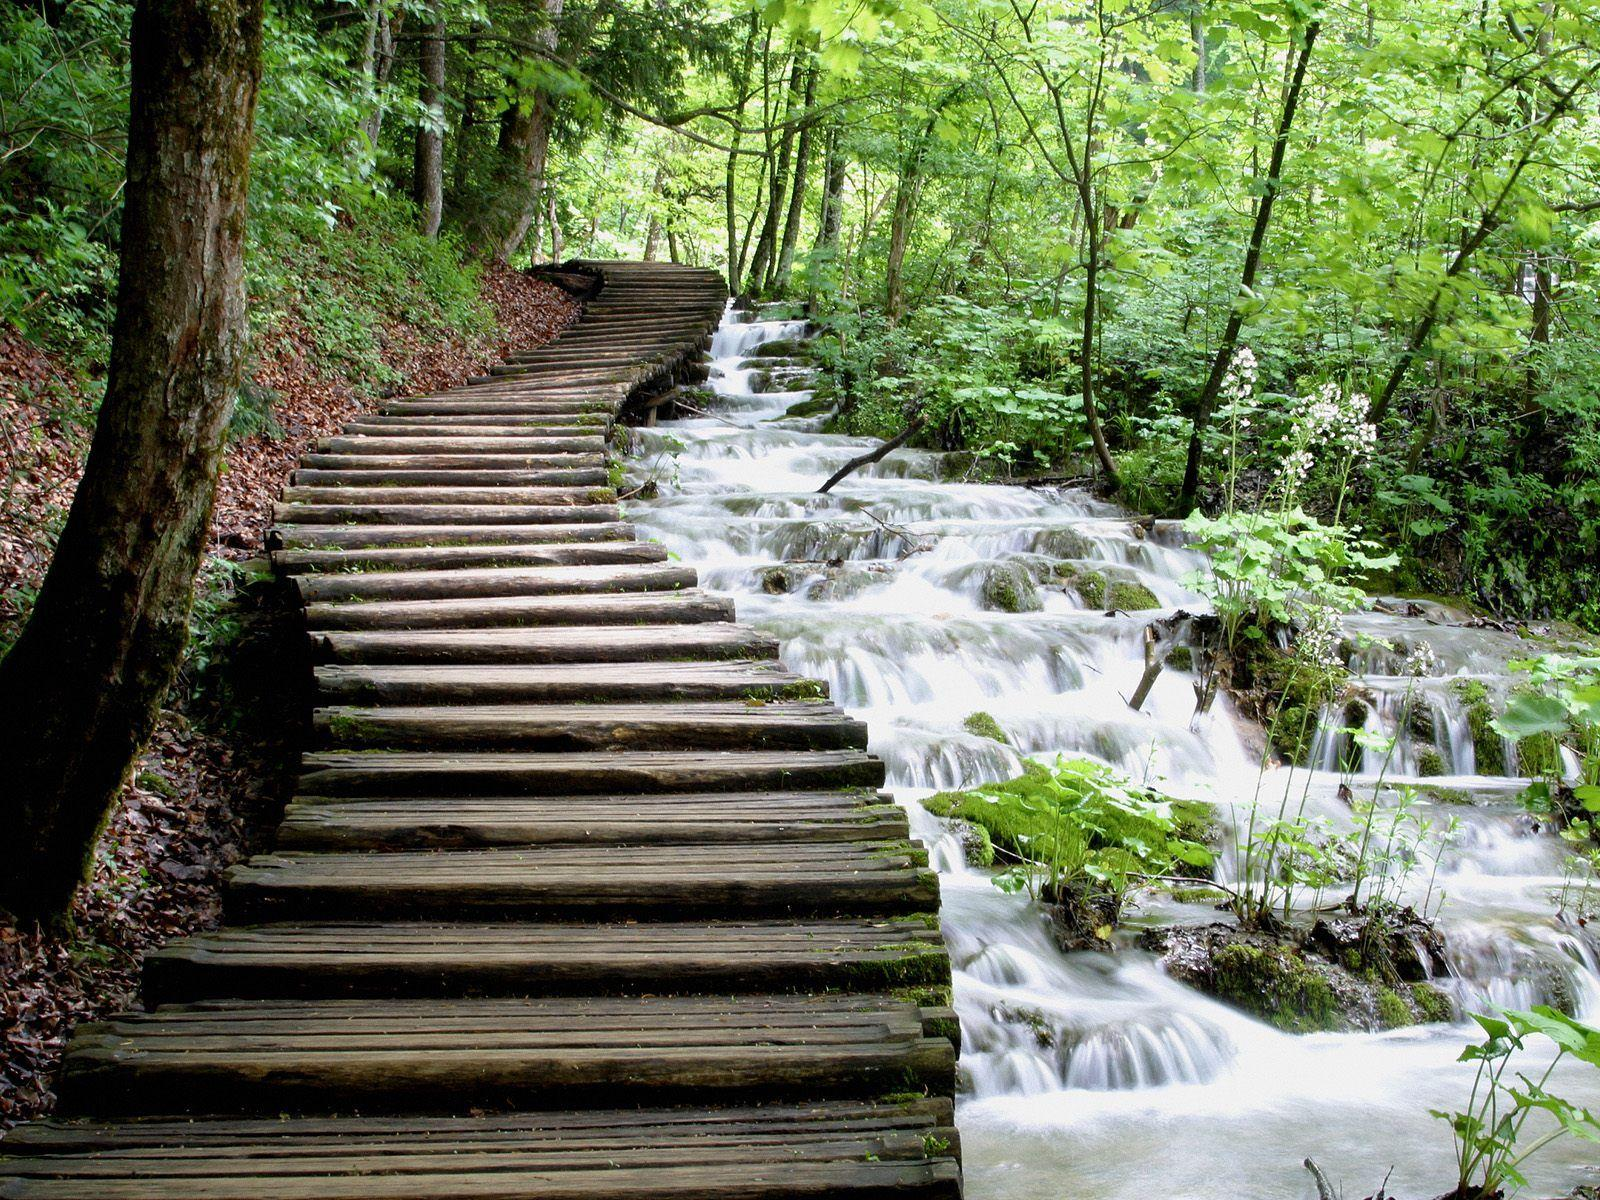 Croatia's Plitvice Lakes, 16 lakes in the mountains covered with